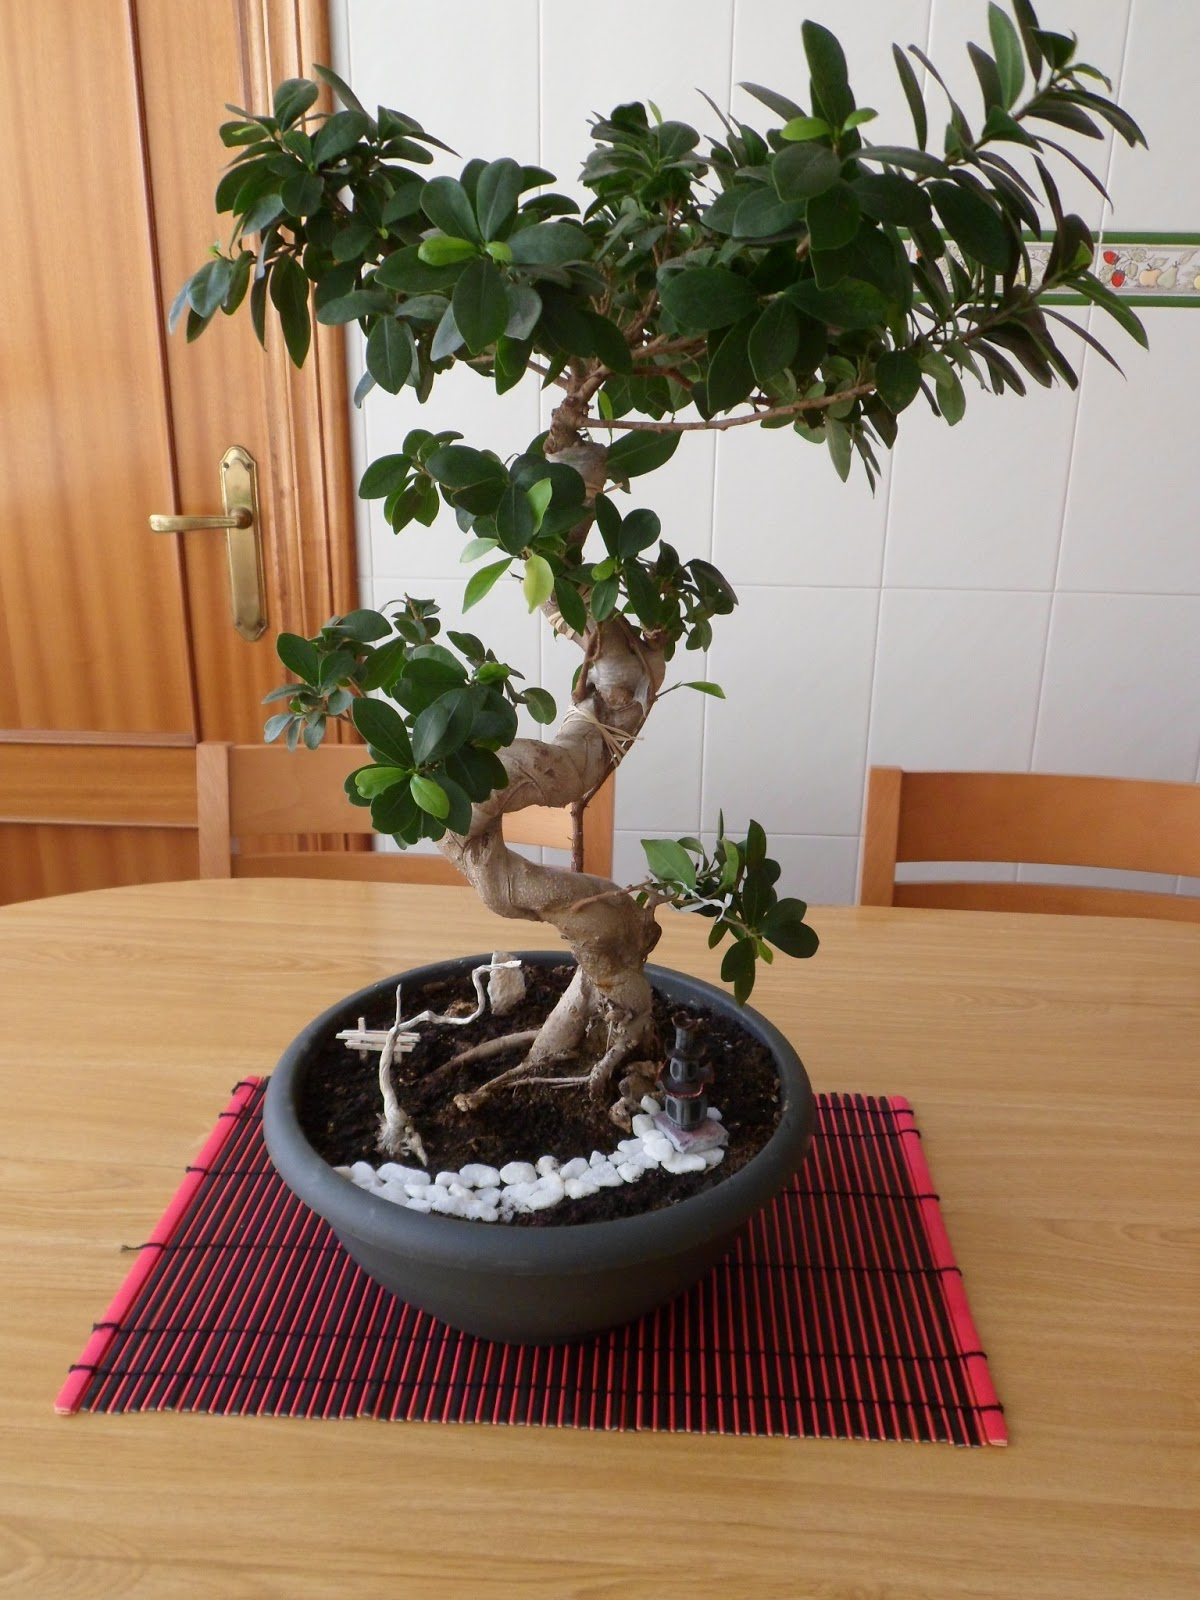 el brezal marchito decoraci n de bonsai